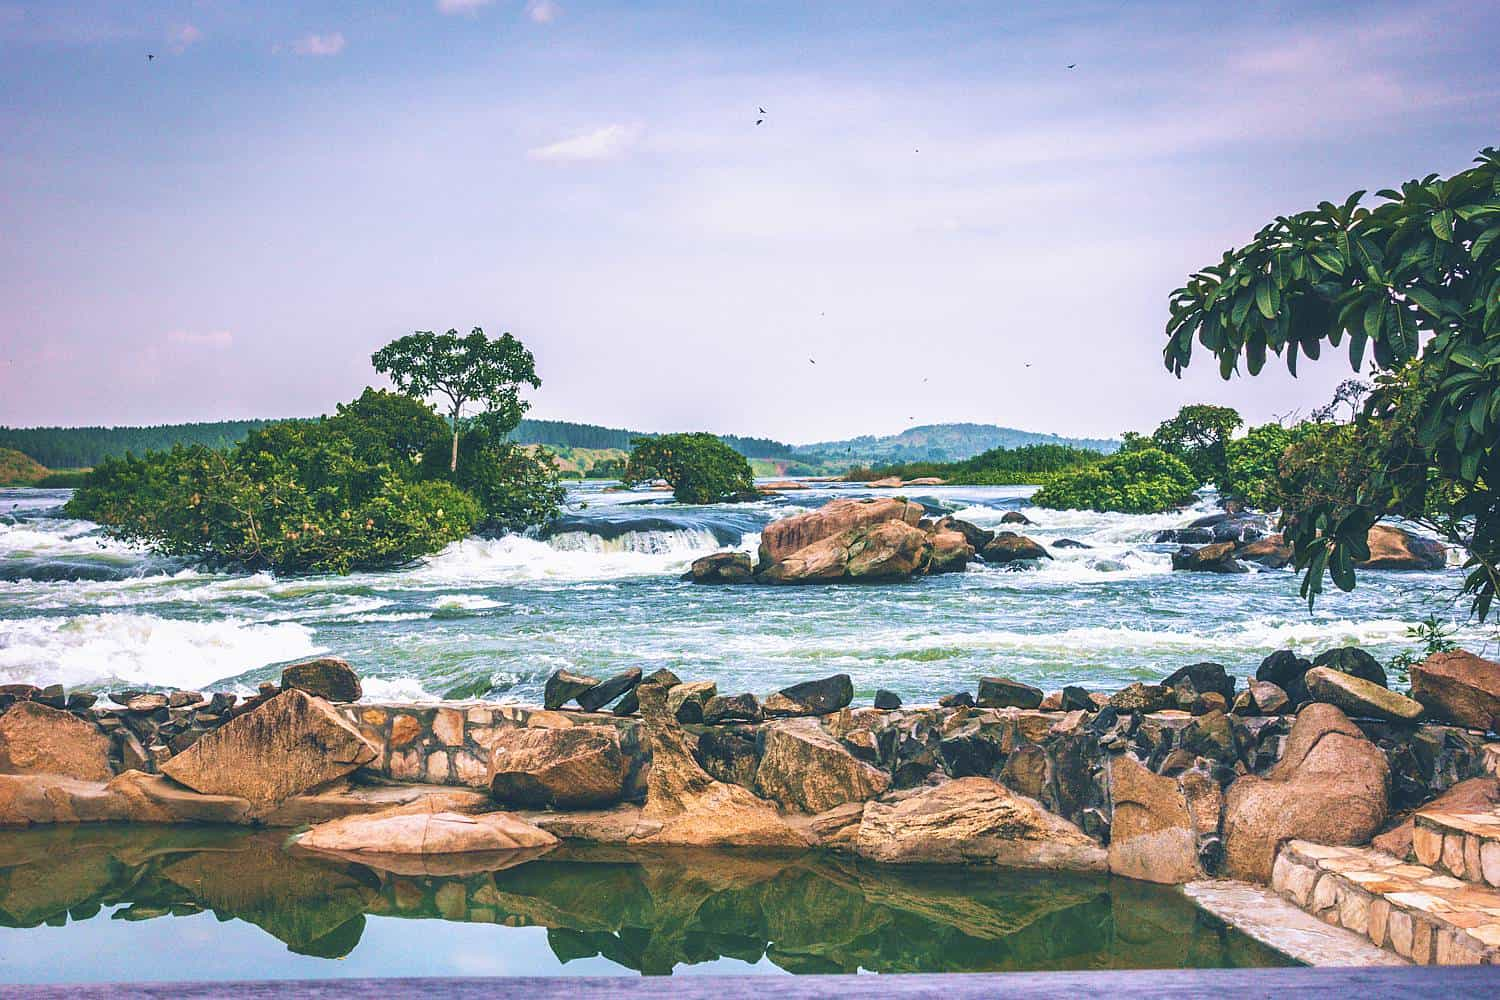 Our Top 10 Tour Activities In Jinja - Nile River & Things You Can Do & See In Jinja - Nile River